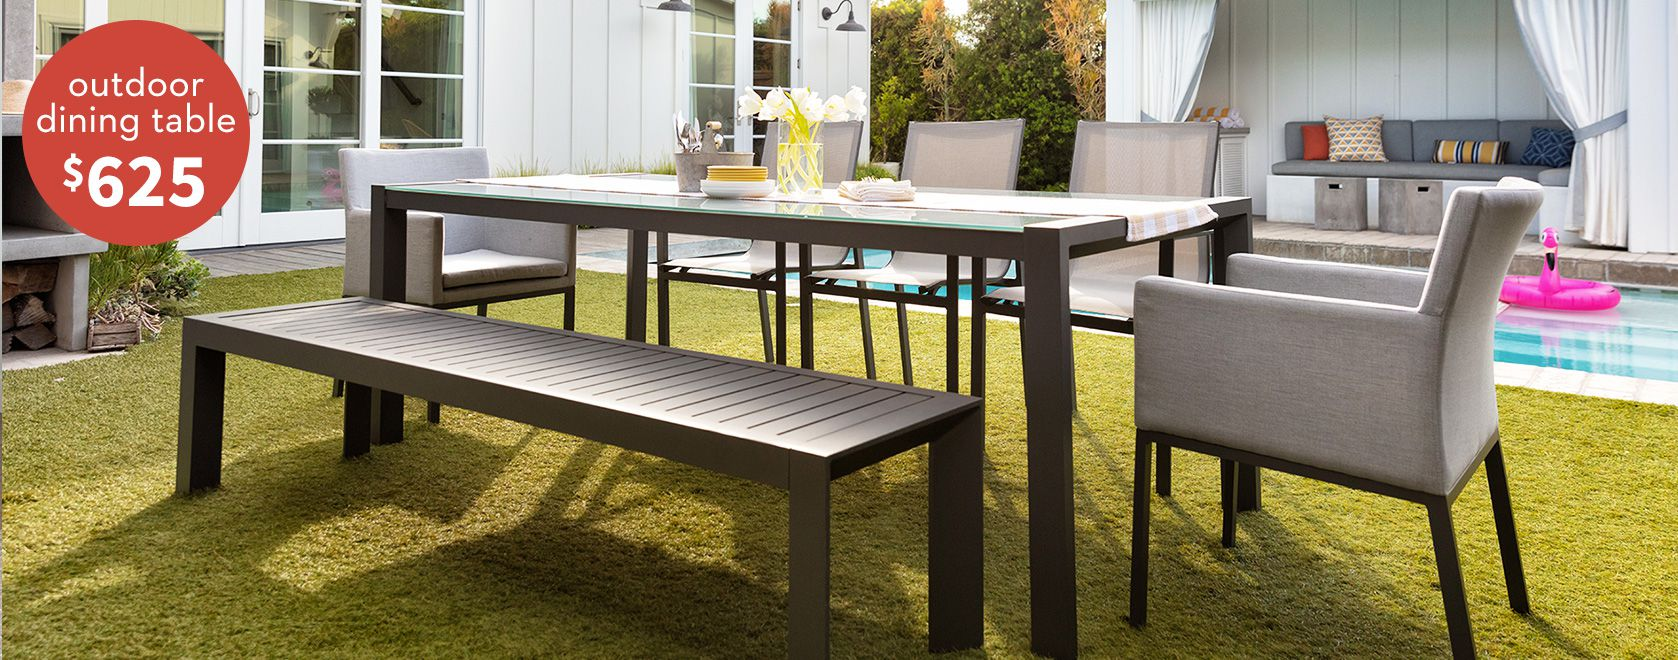 Ravelo Outdoor dining table $625